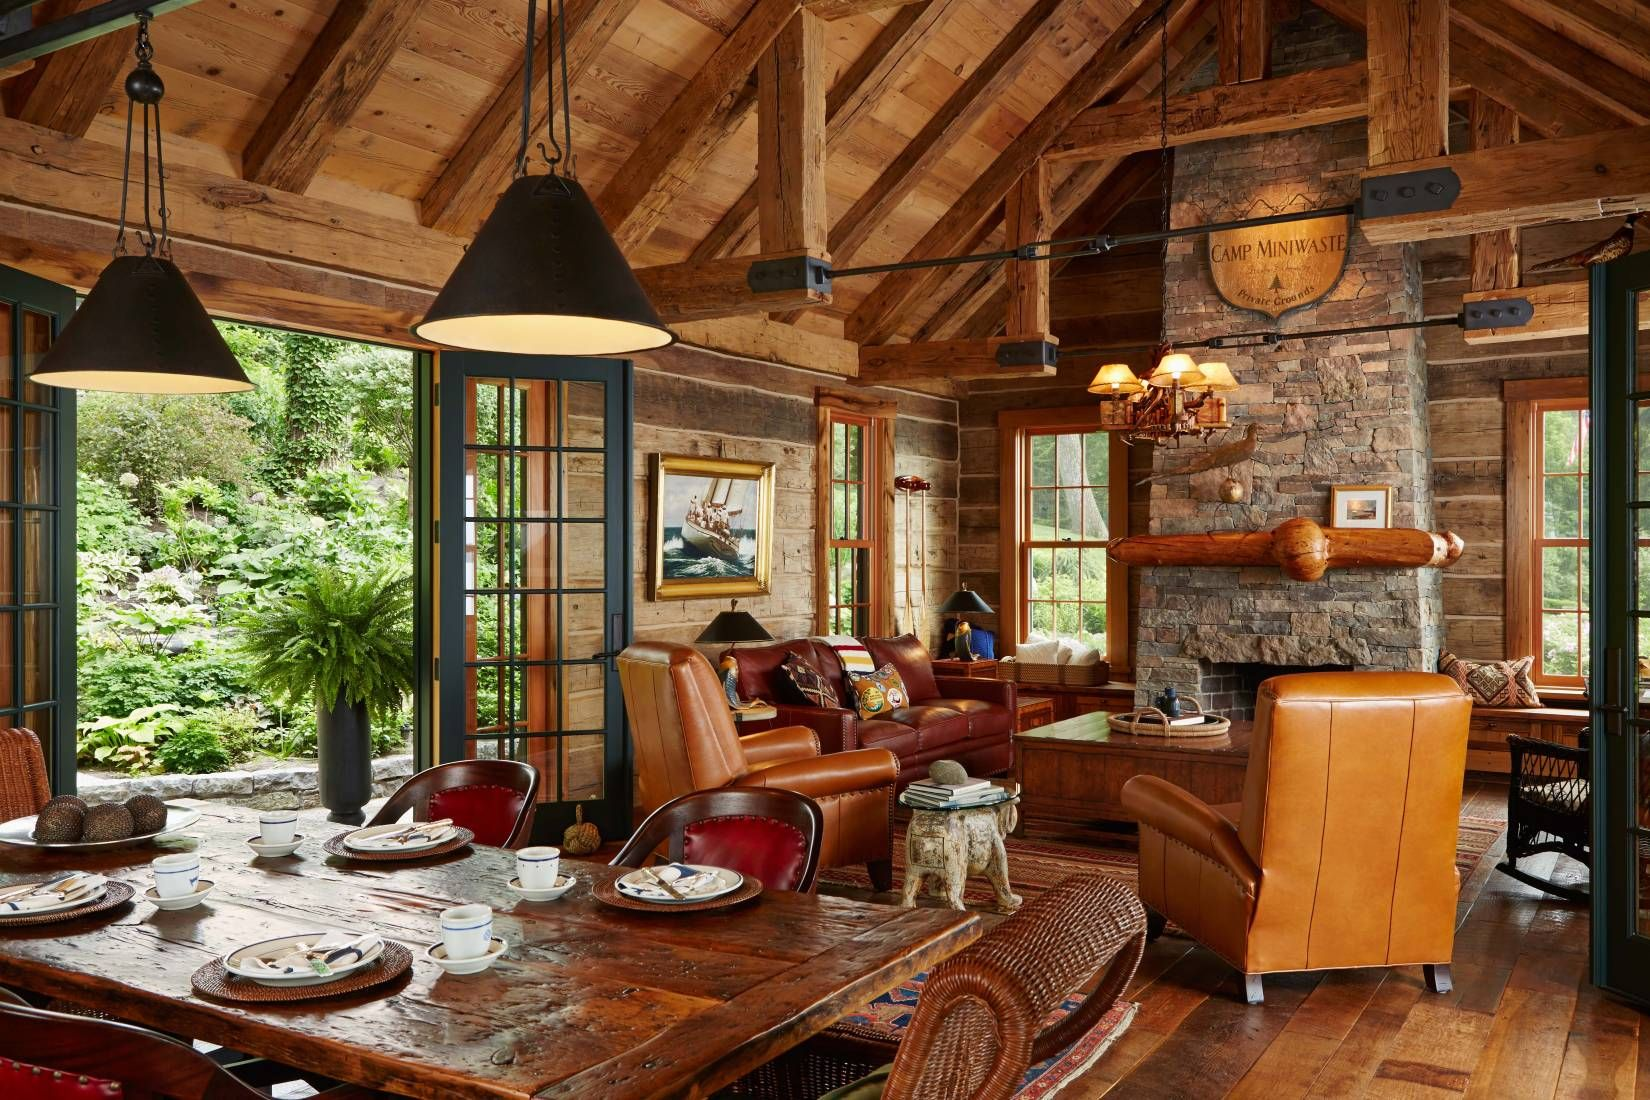 Small luxury cabin interior - This Old Boathouse Was Turned Into A Charming Cabin Overlooking The Lake